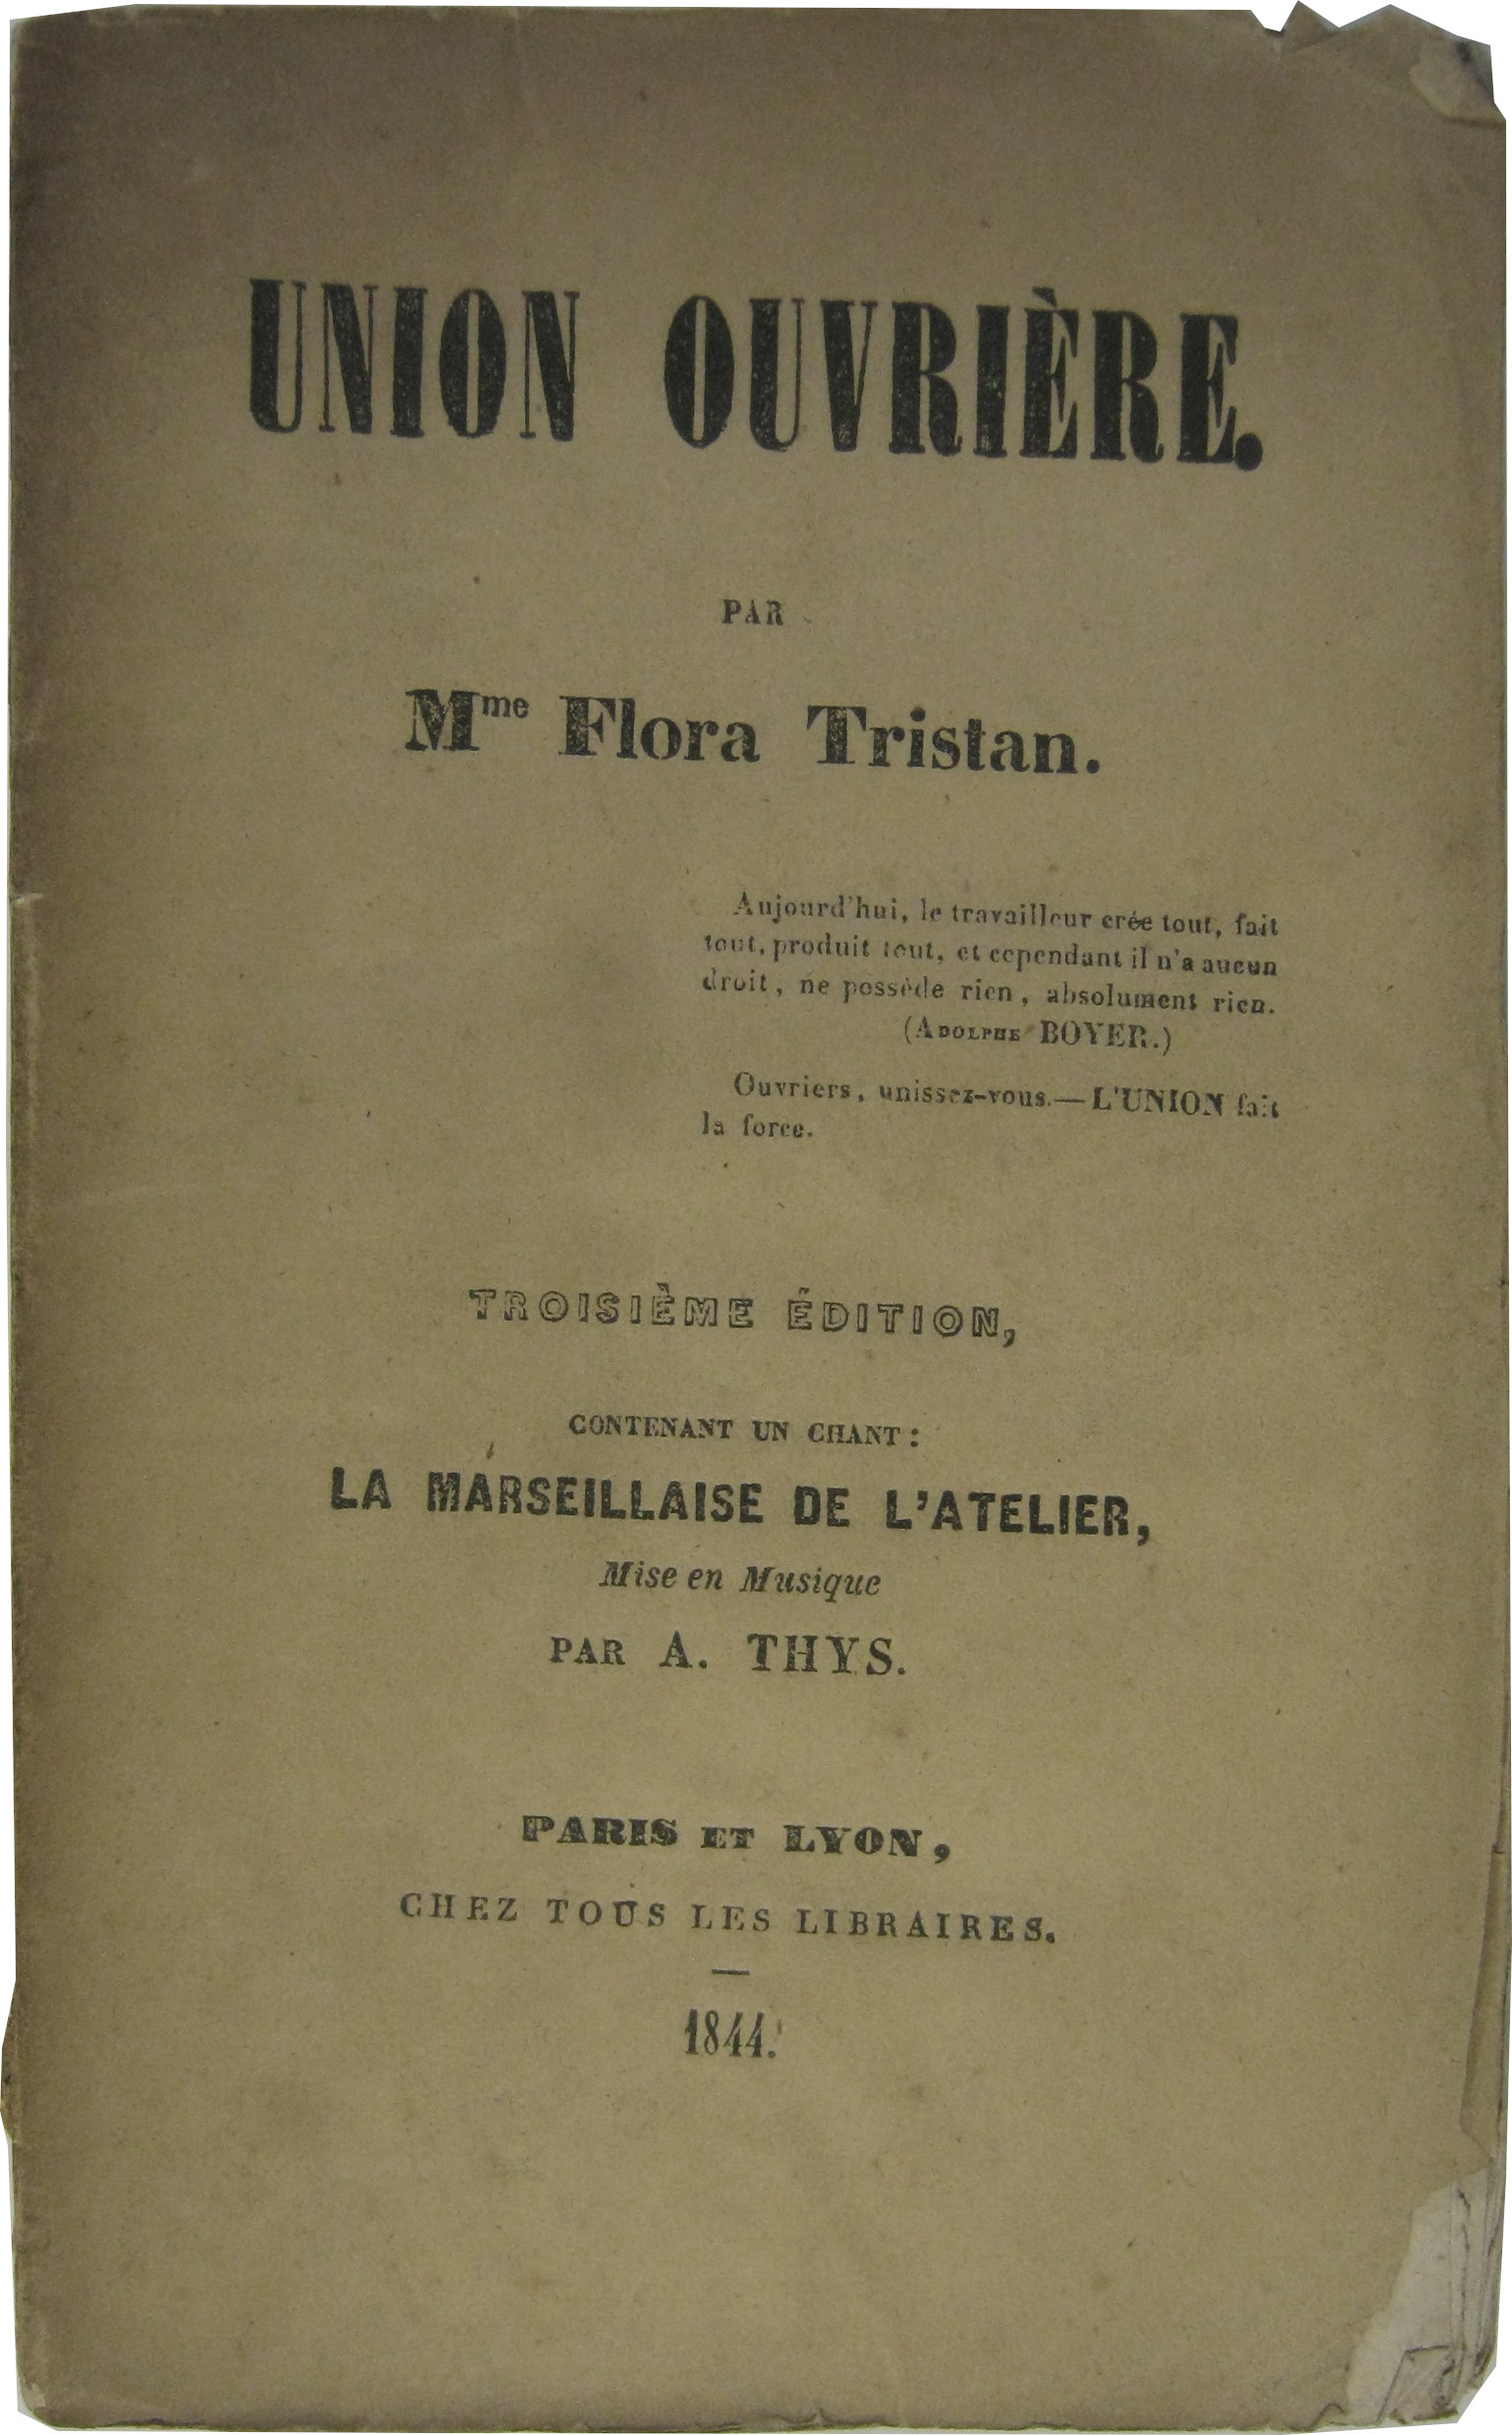 Image result for L'Union ouvrière tristan